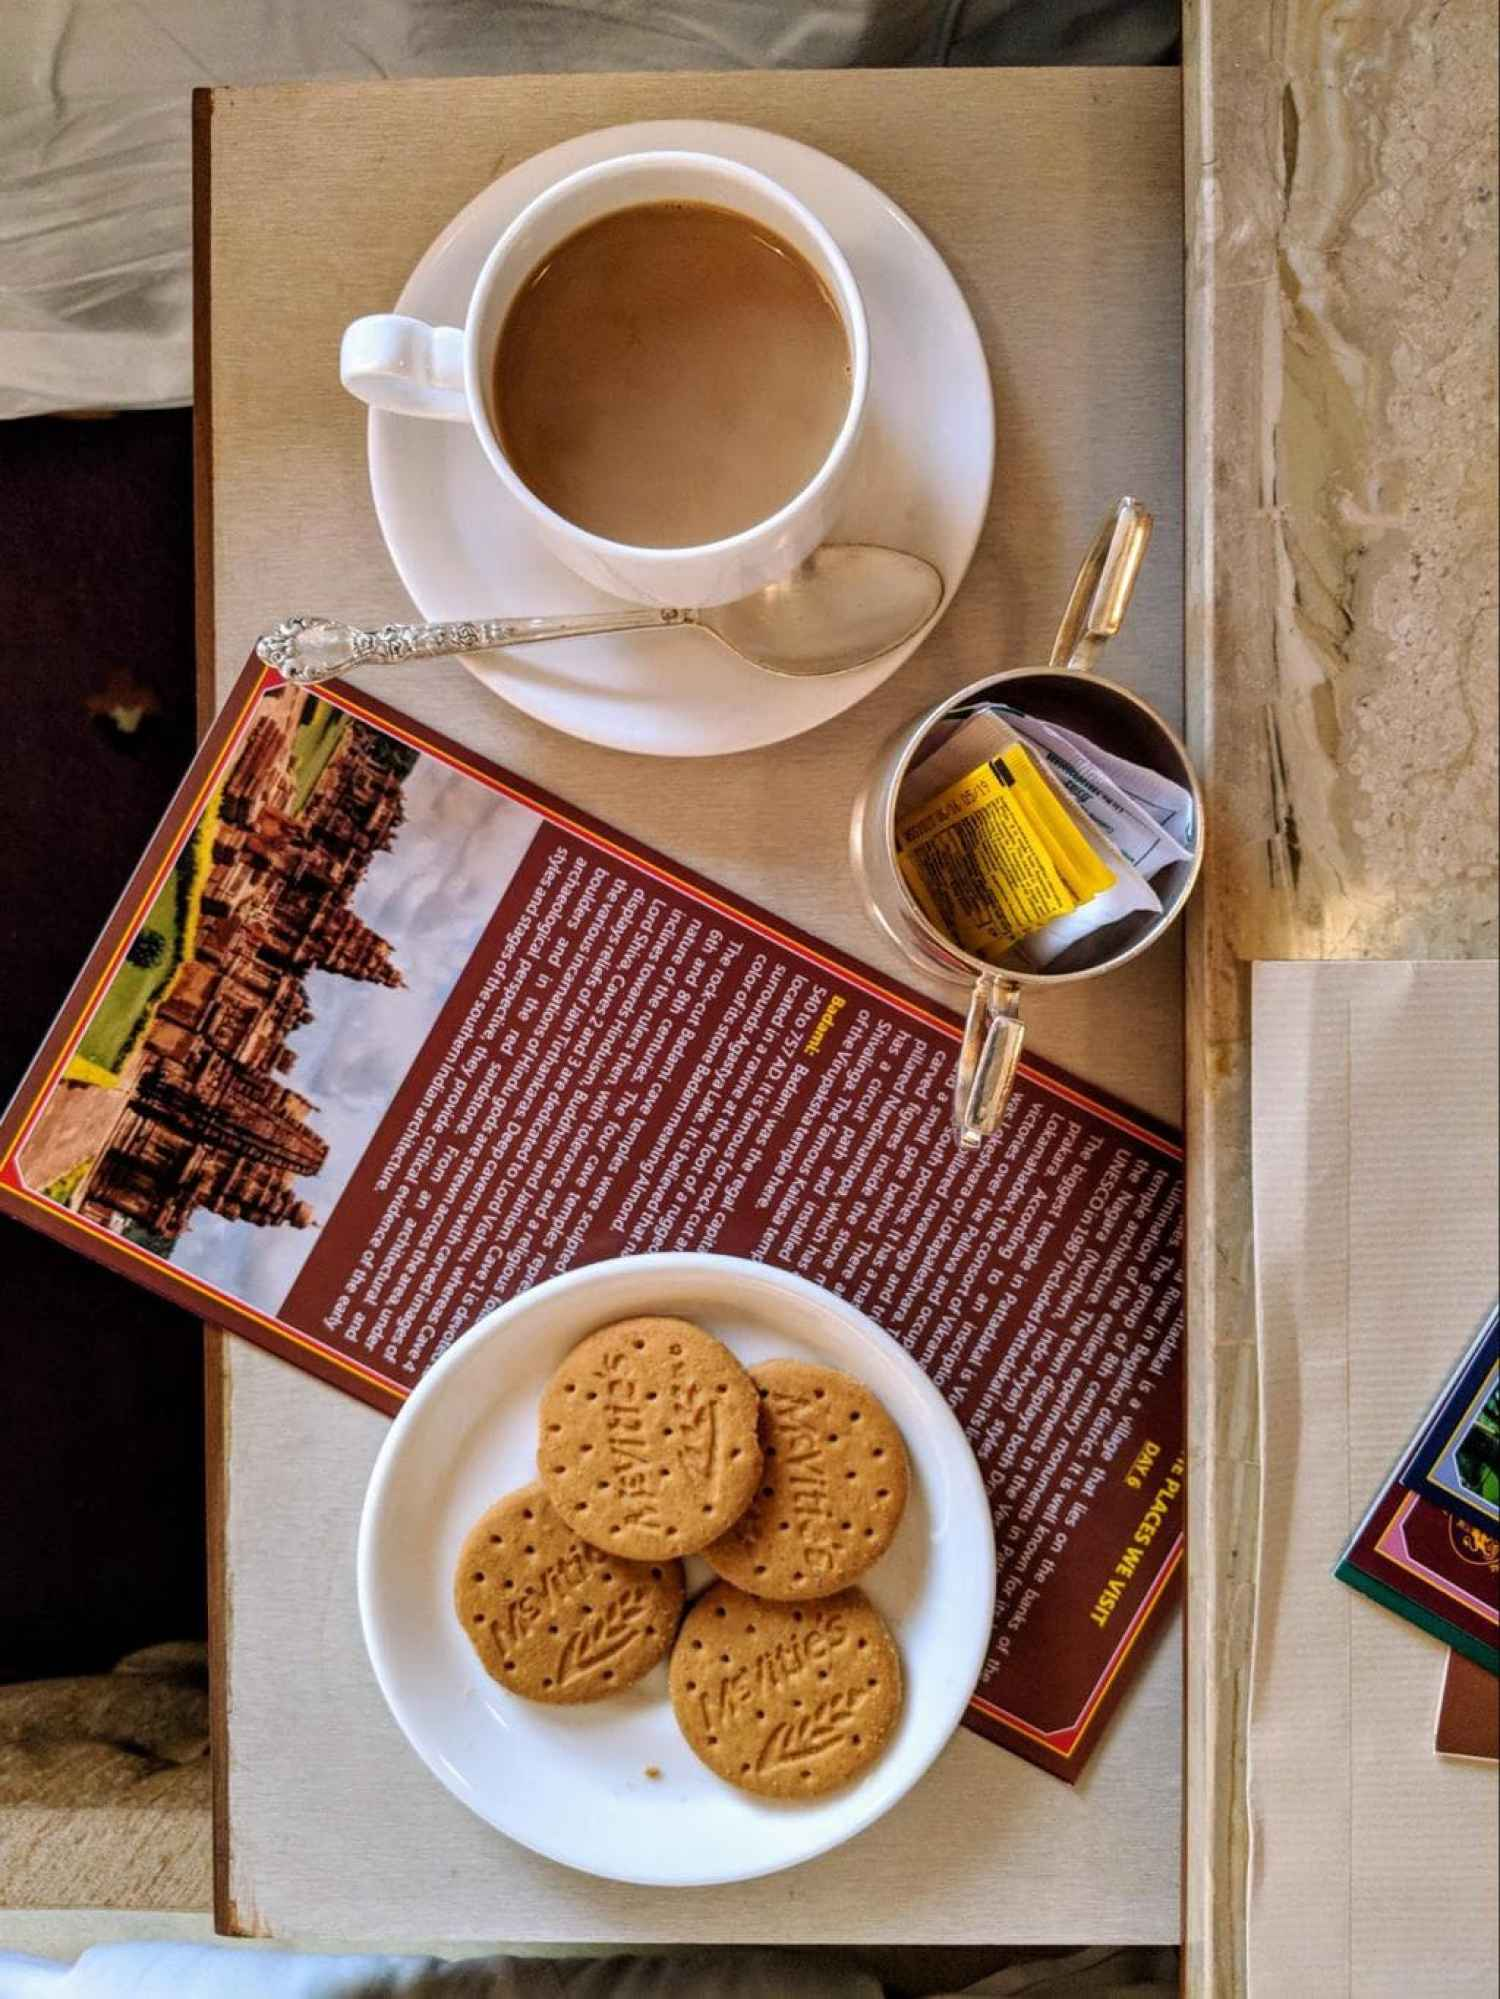 Tea and biscuits in my room